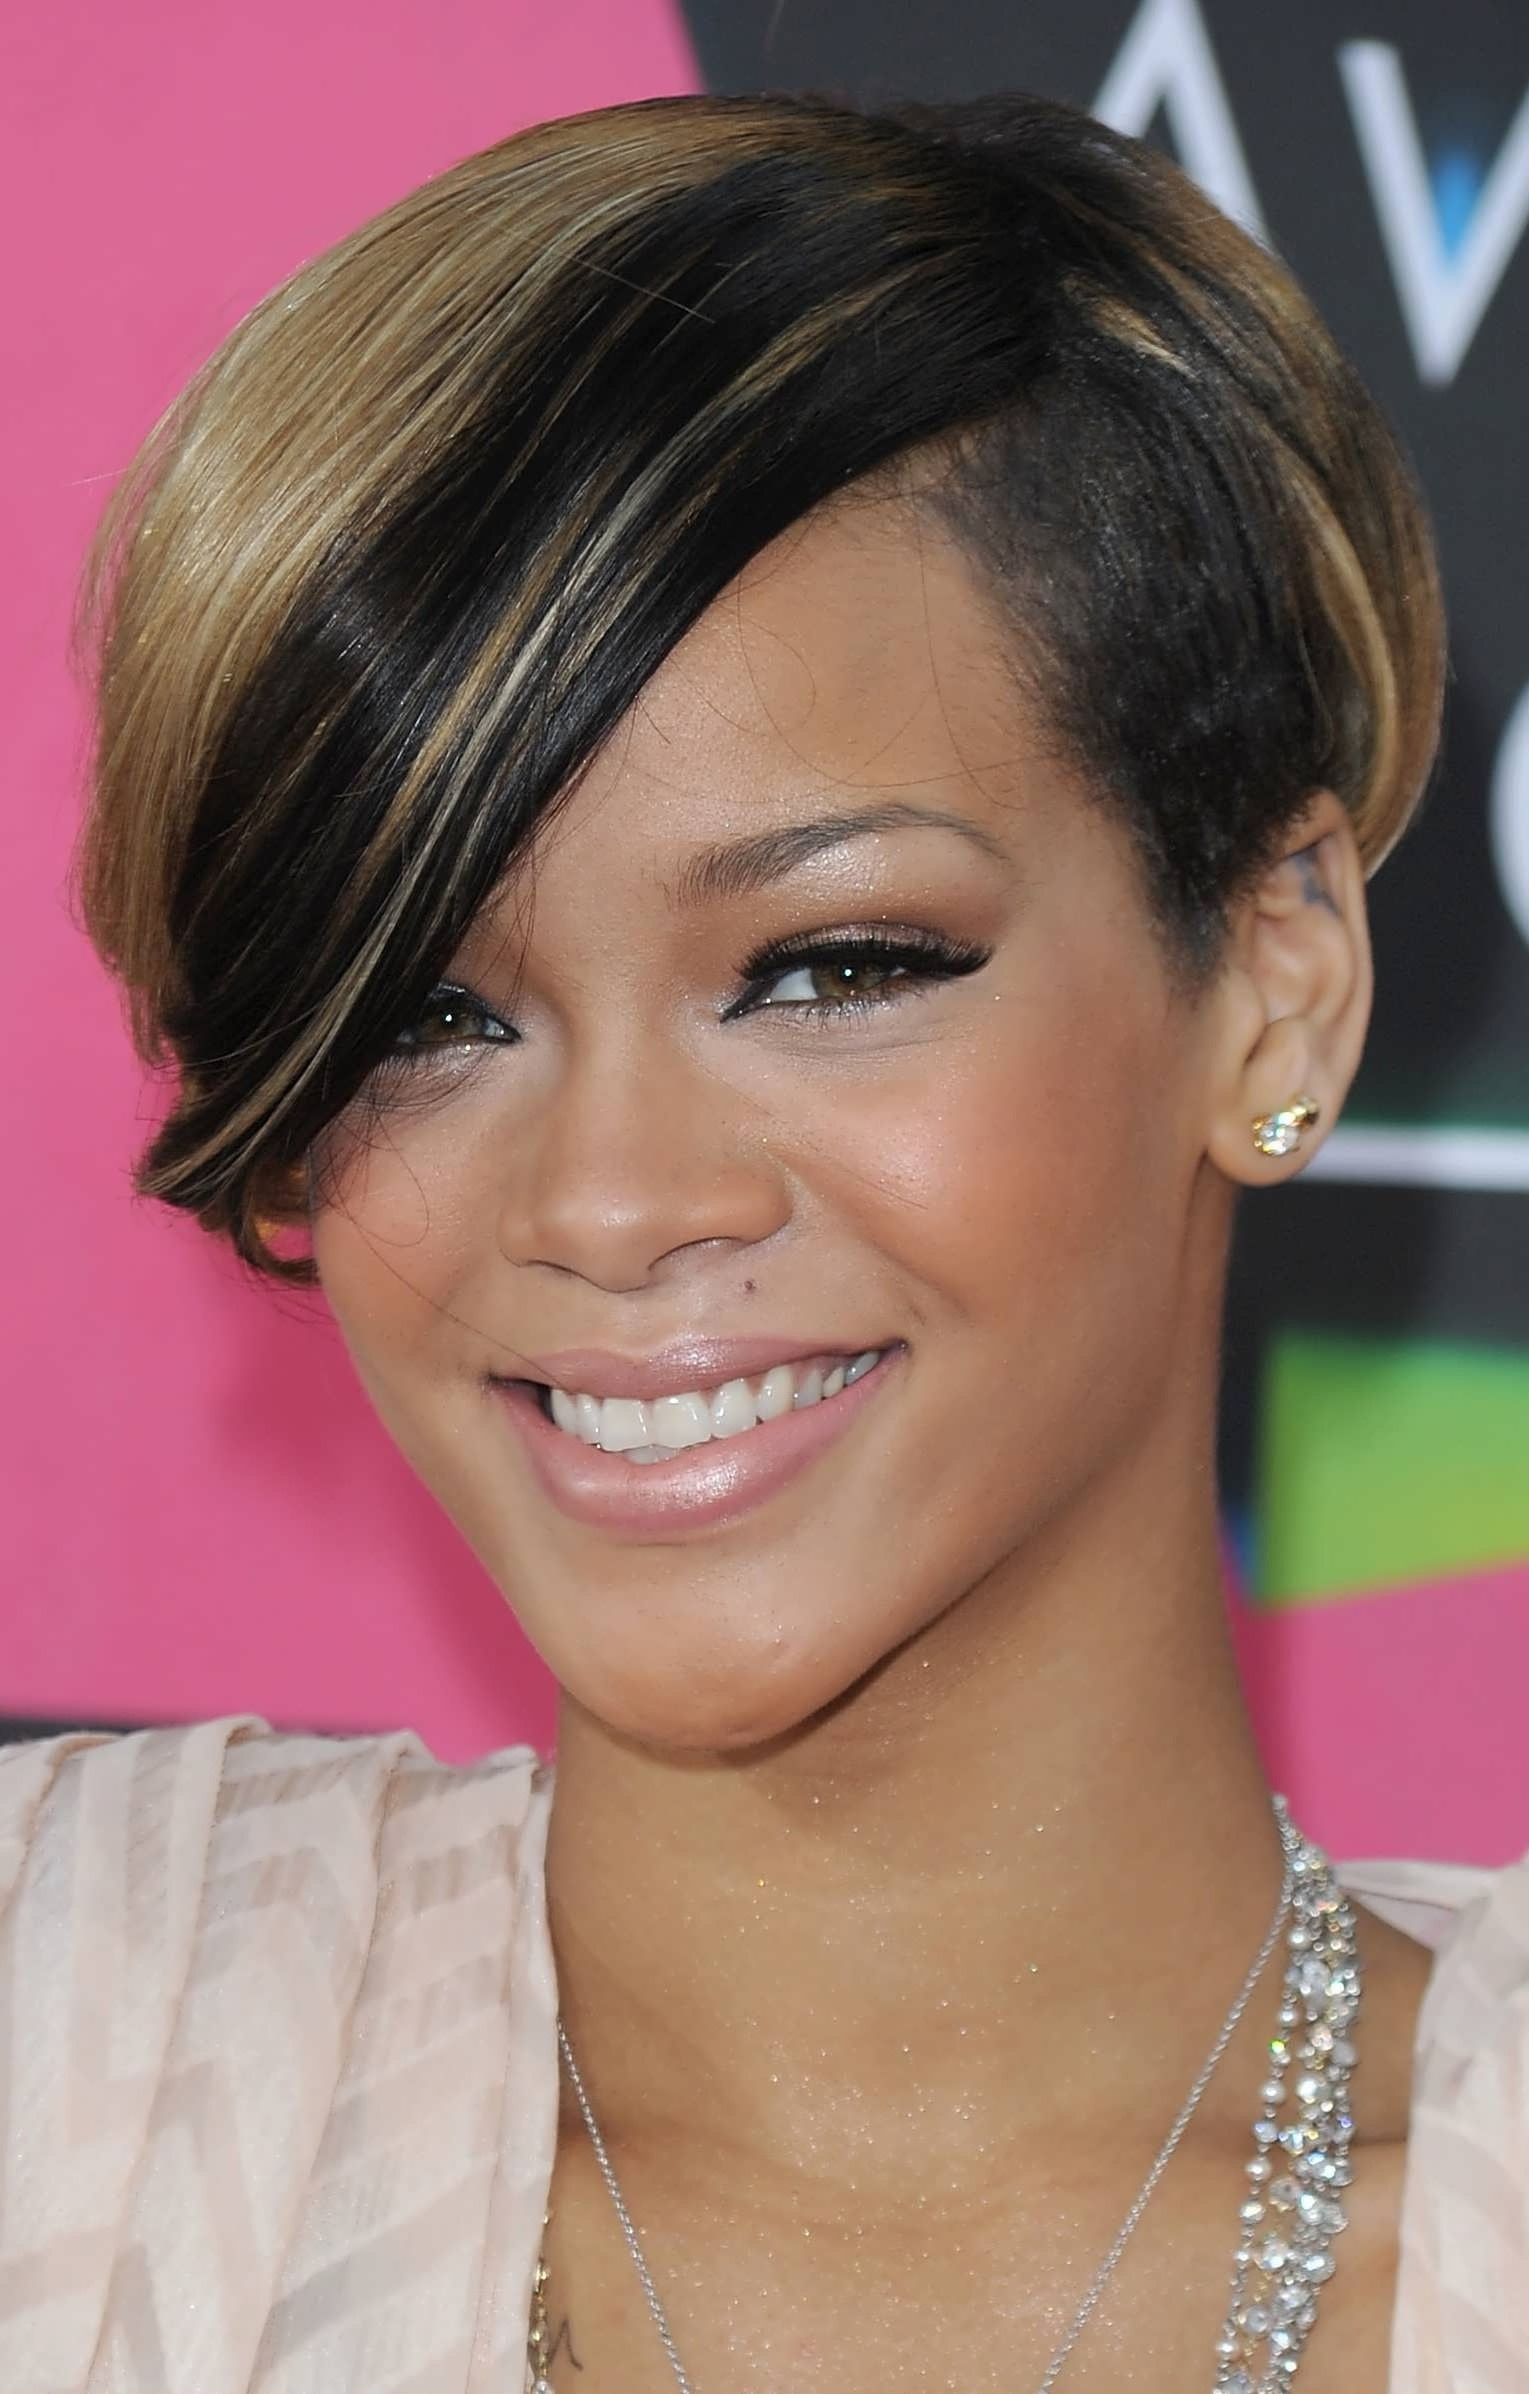 Latest Short Hairstyles For African American Women With Round Faces With Regard To Short Haircuts For African American Women With Round Faces (View 25 of 25)